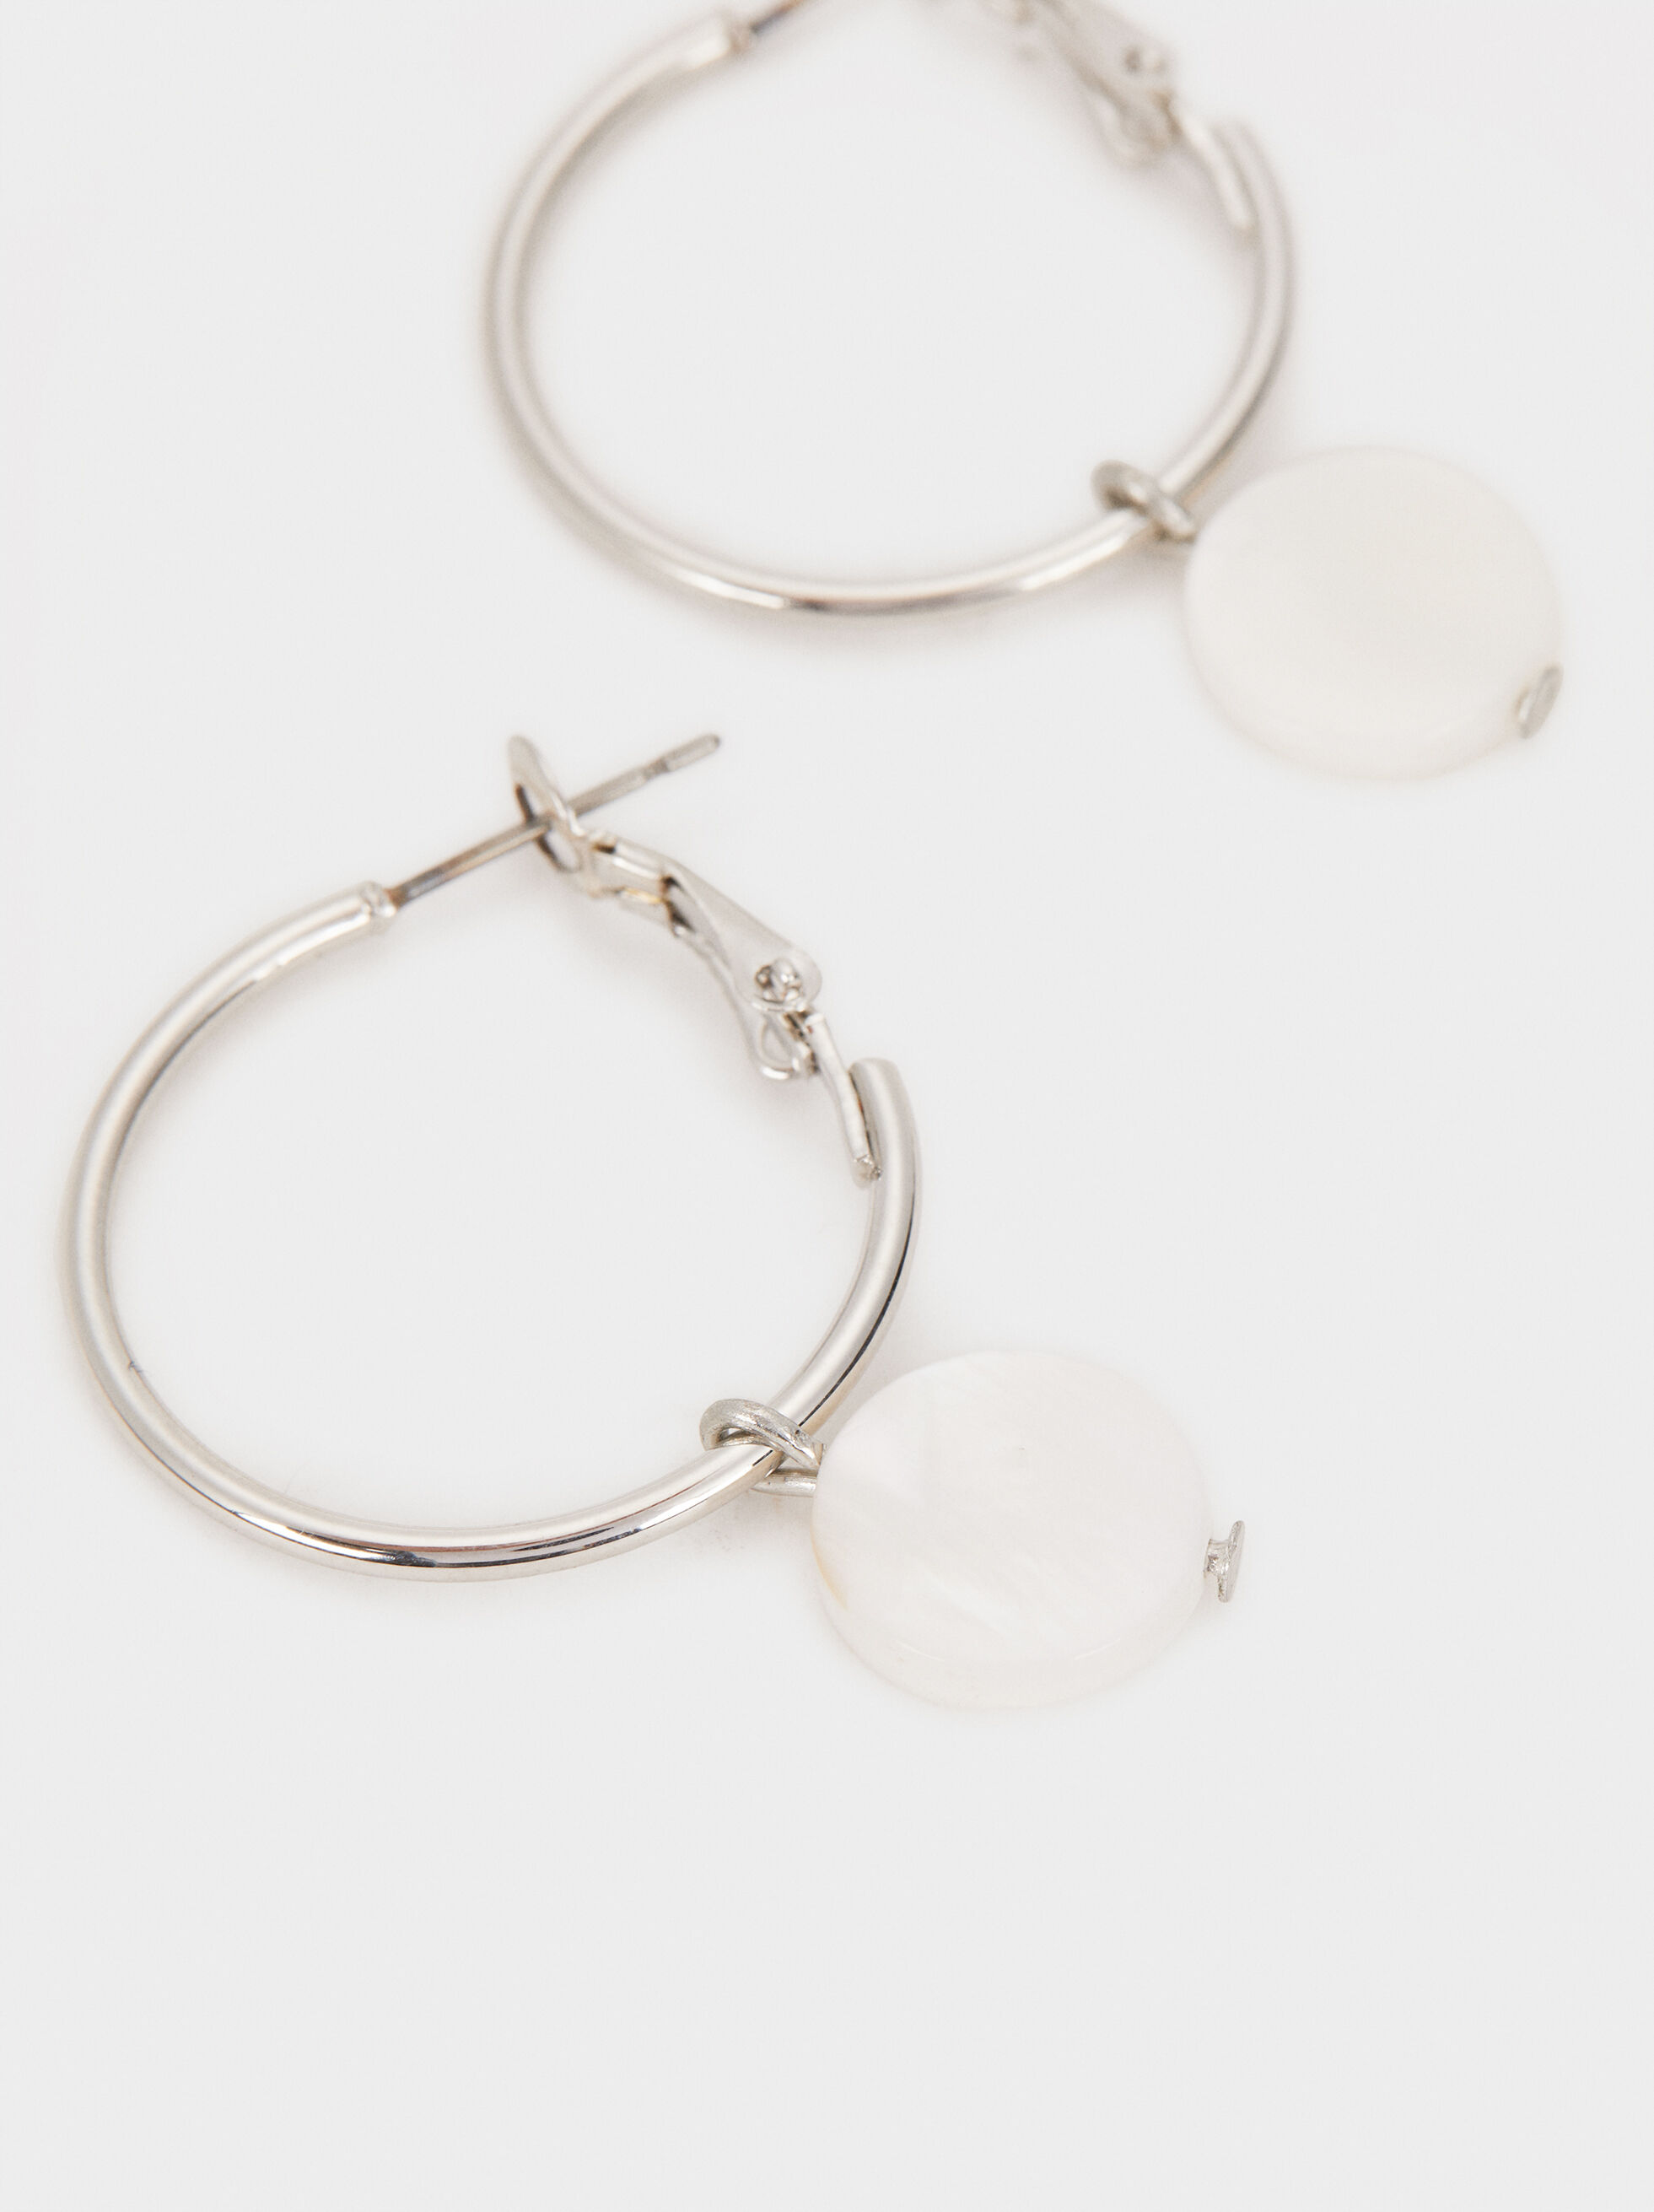 Medium-Sized Faux Pearl Hoop Earrings, Silver, hi-res